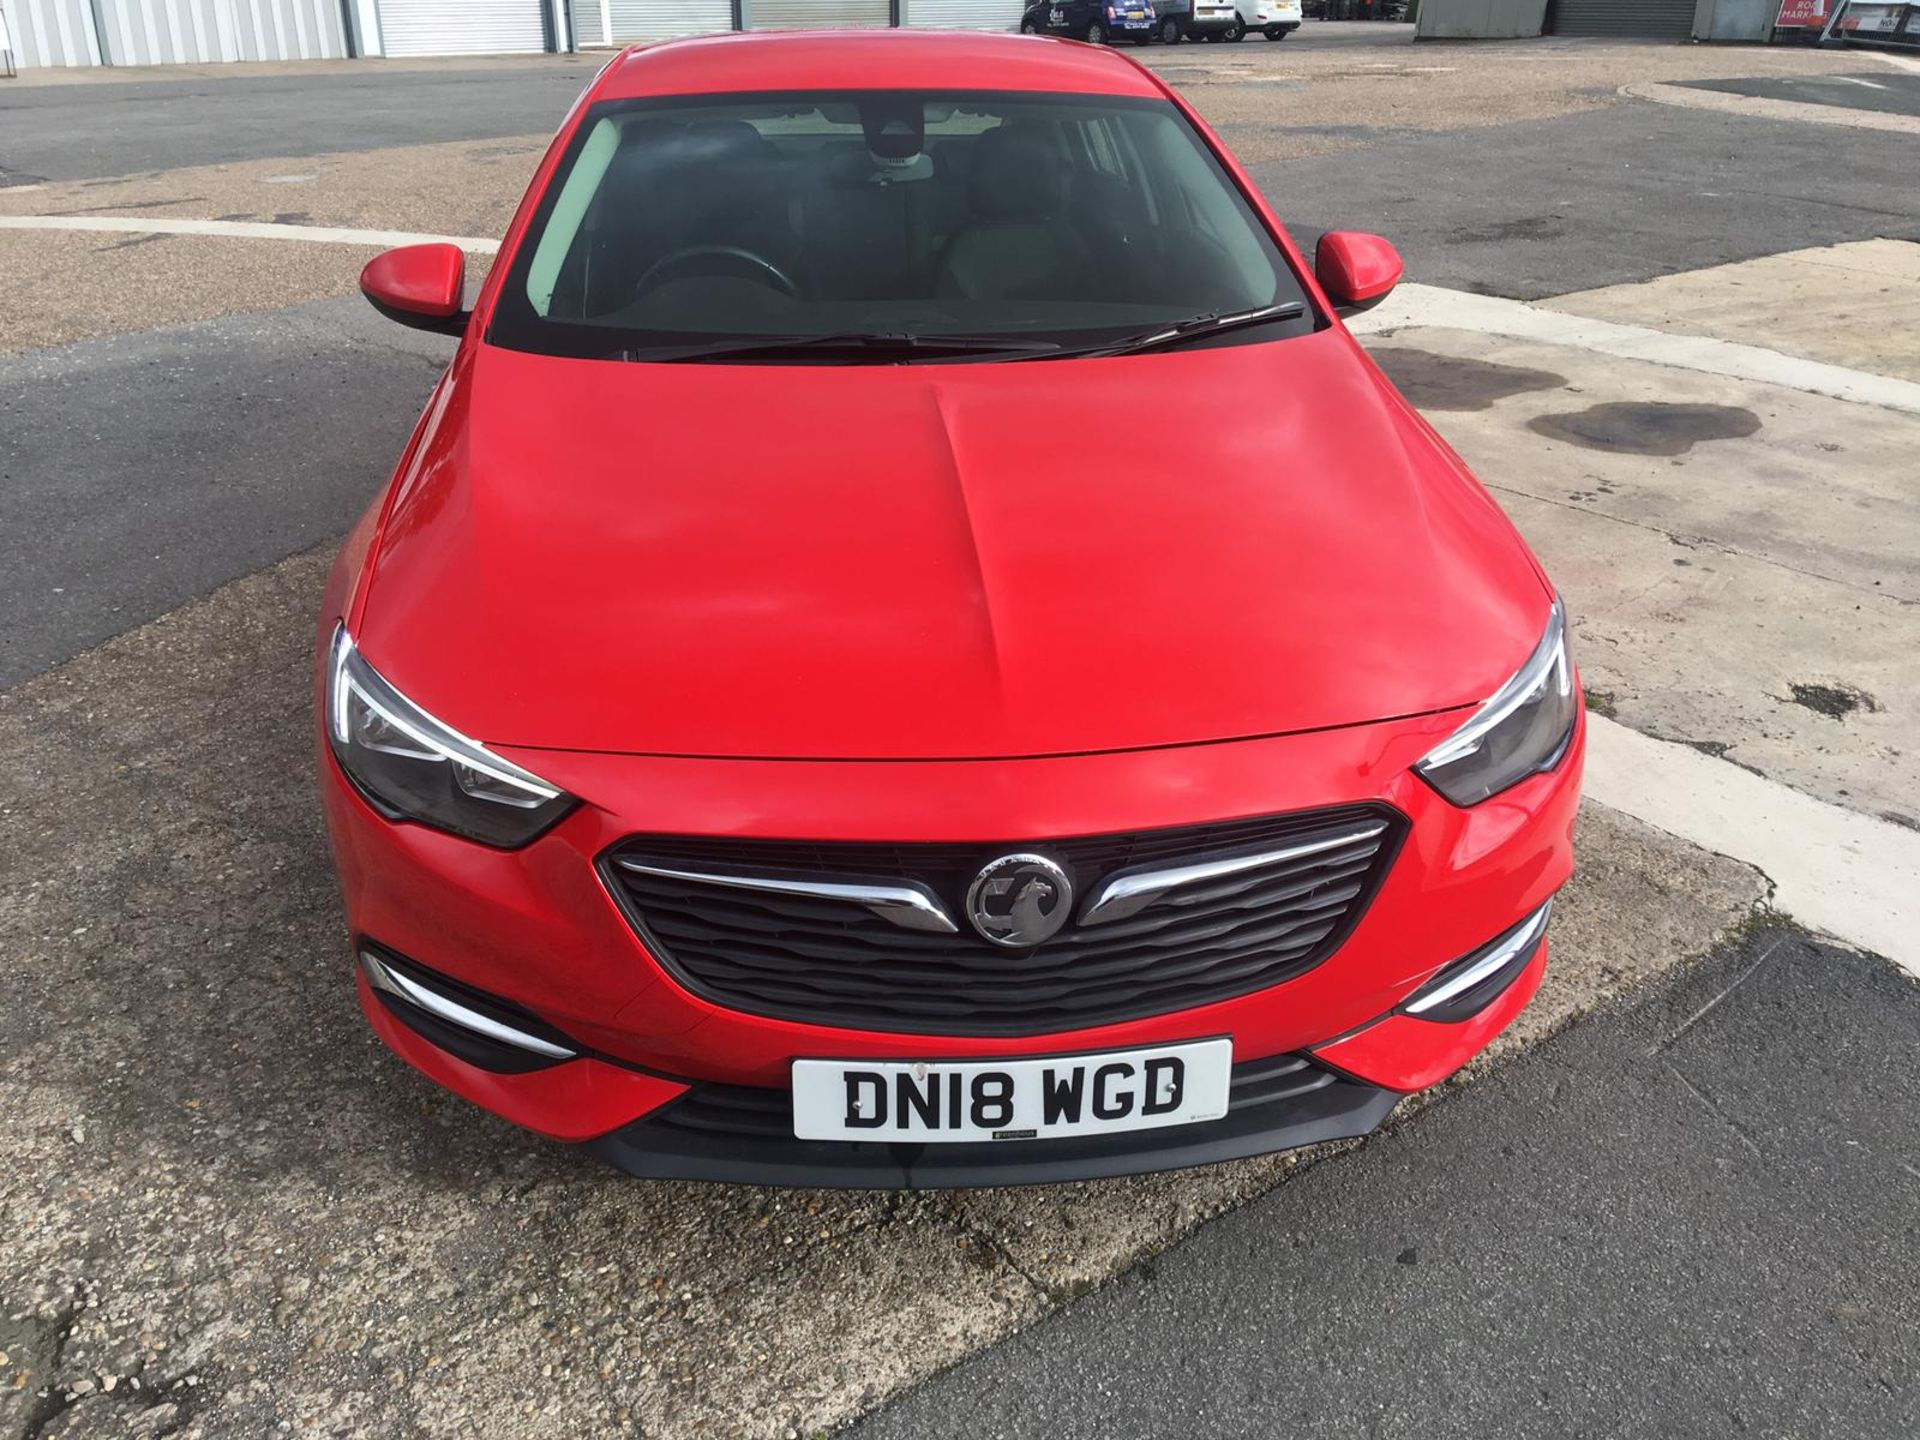 2018/18 REG VAUXHALL INSIGNIA DESIGN ECOTEC TURBO 1.6 DIESEL RED, SHOWING 0 FORMER KEEPERS *NO VAT* - Image 2 of 34